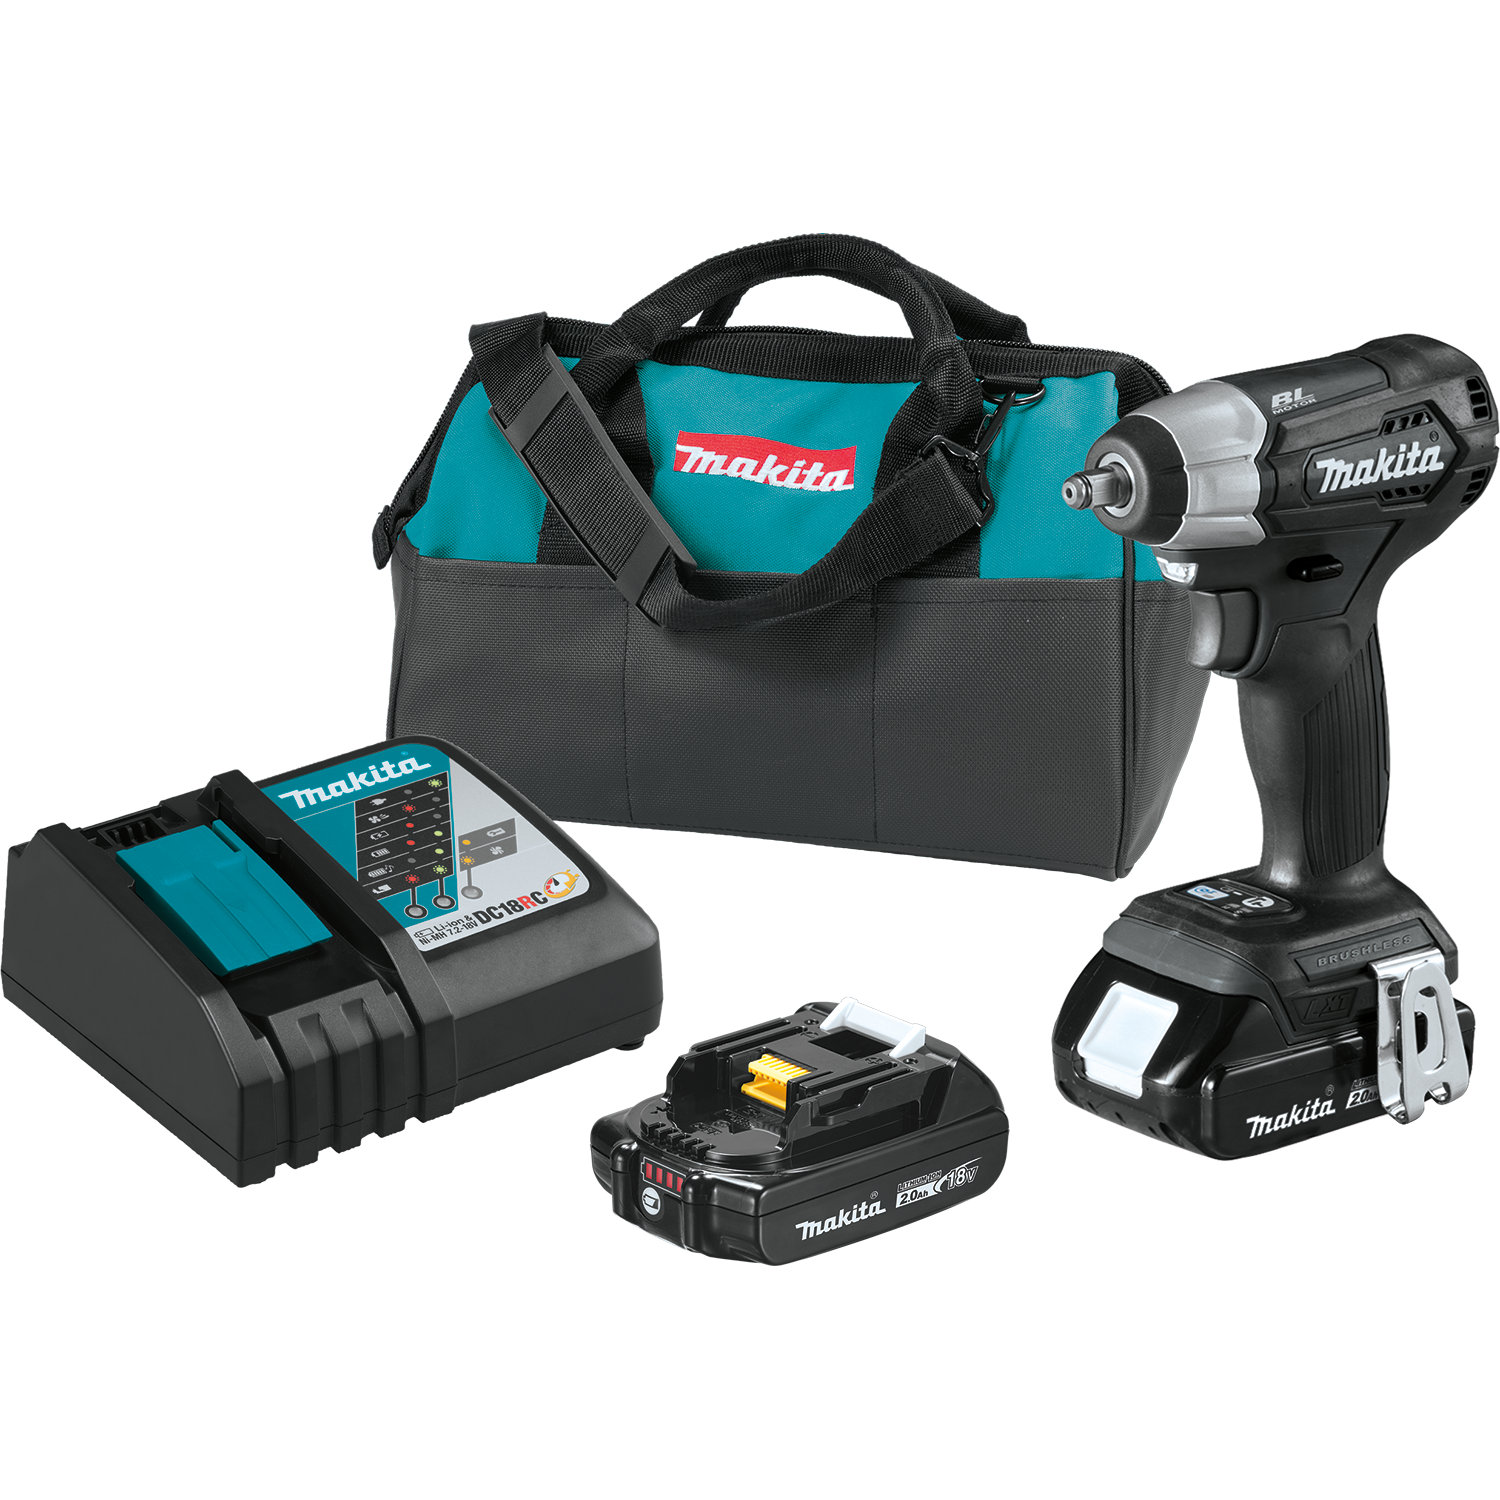 MAKITA - Cordless and Corded Power Tools, Power Equipment ...